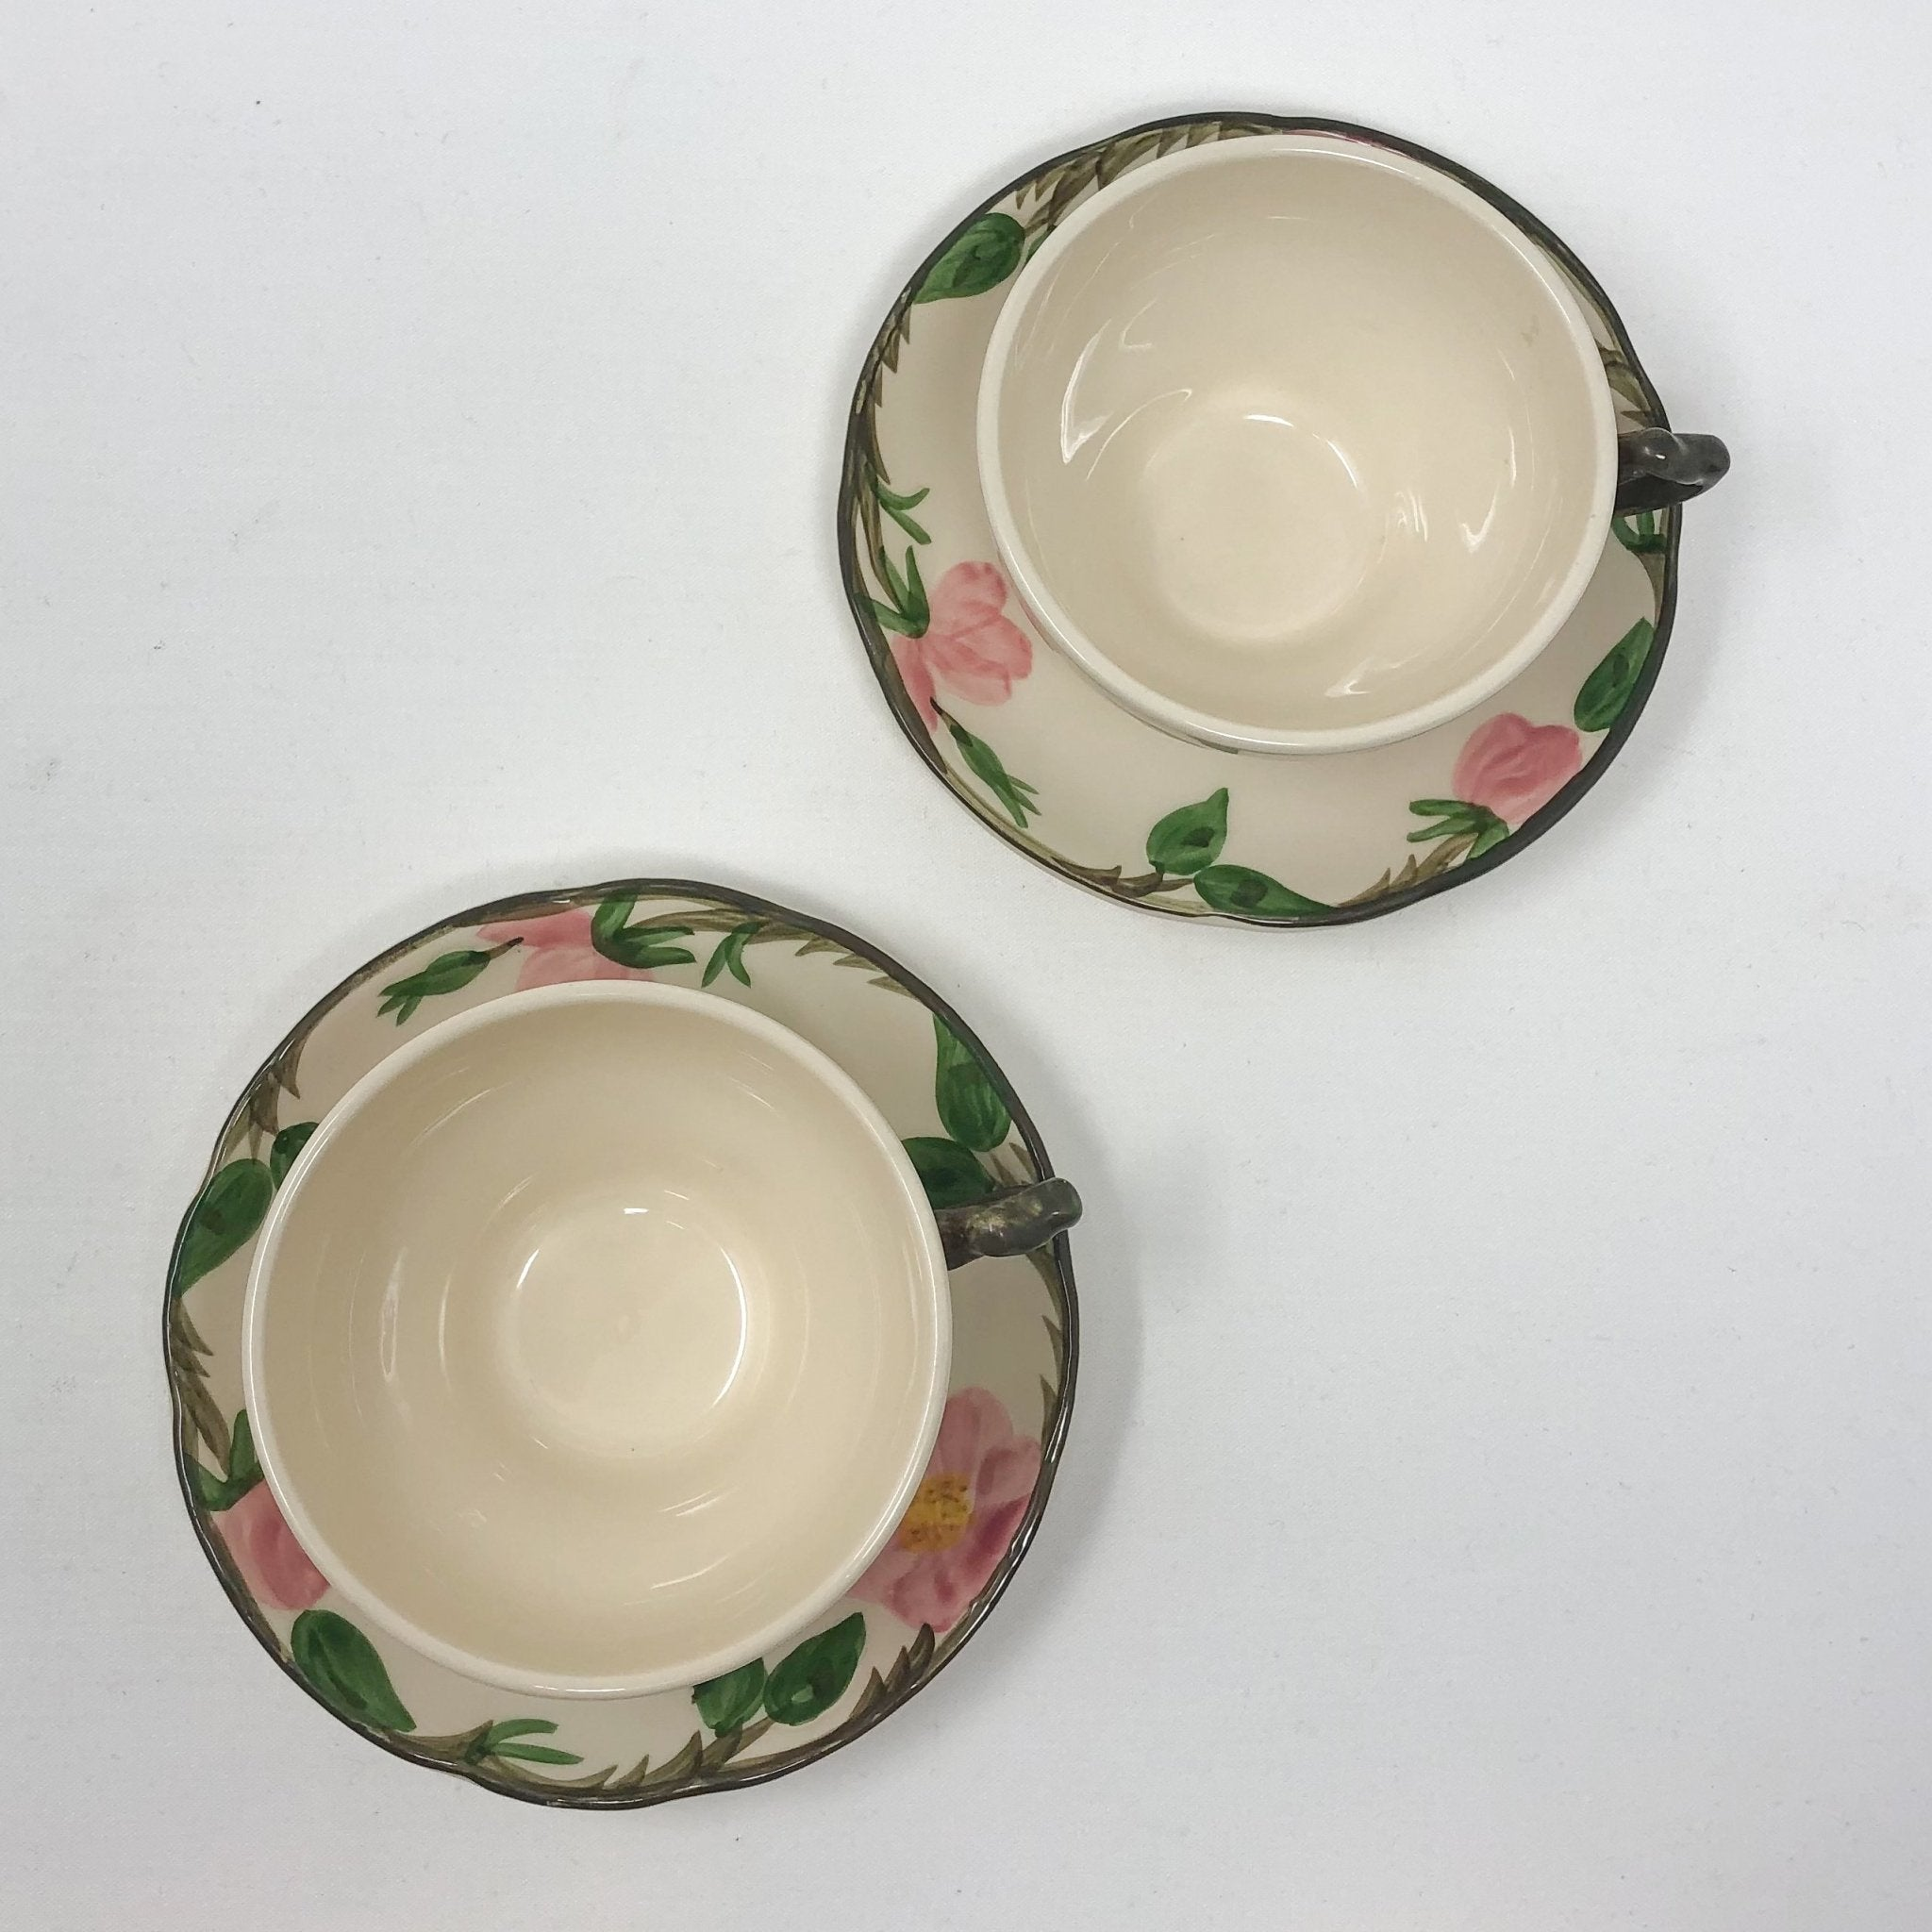 Franciscan Desert Rose | Teacup & Saucer (Set of 2) | Franciscan - The Brooklyn Teacup